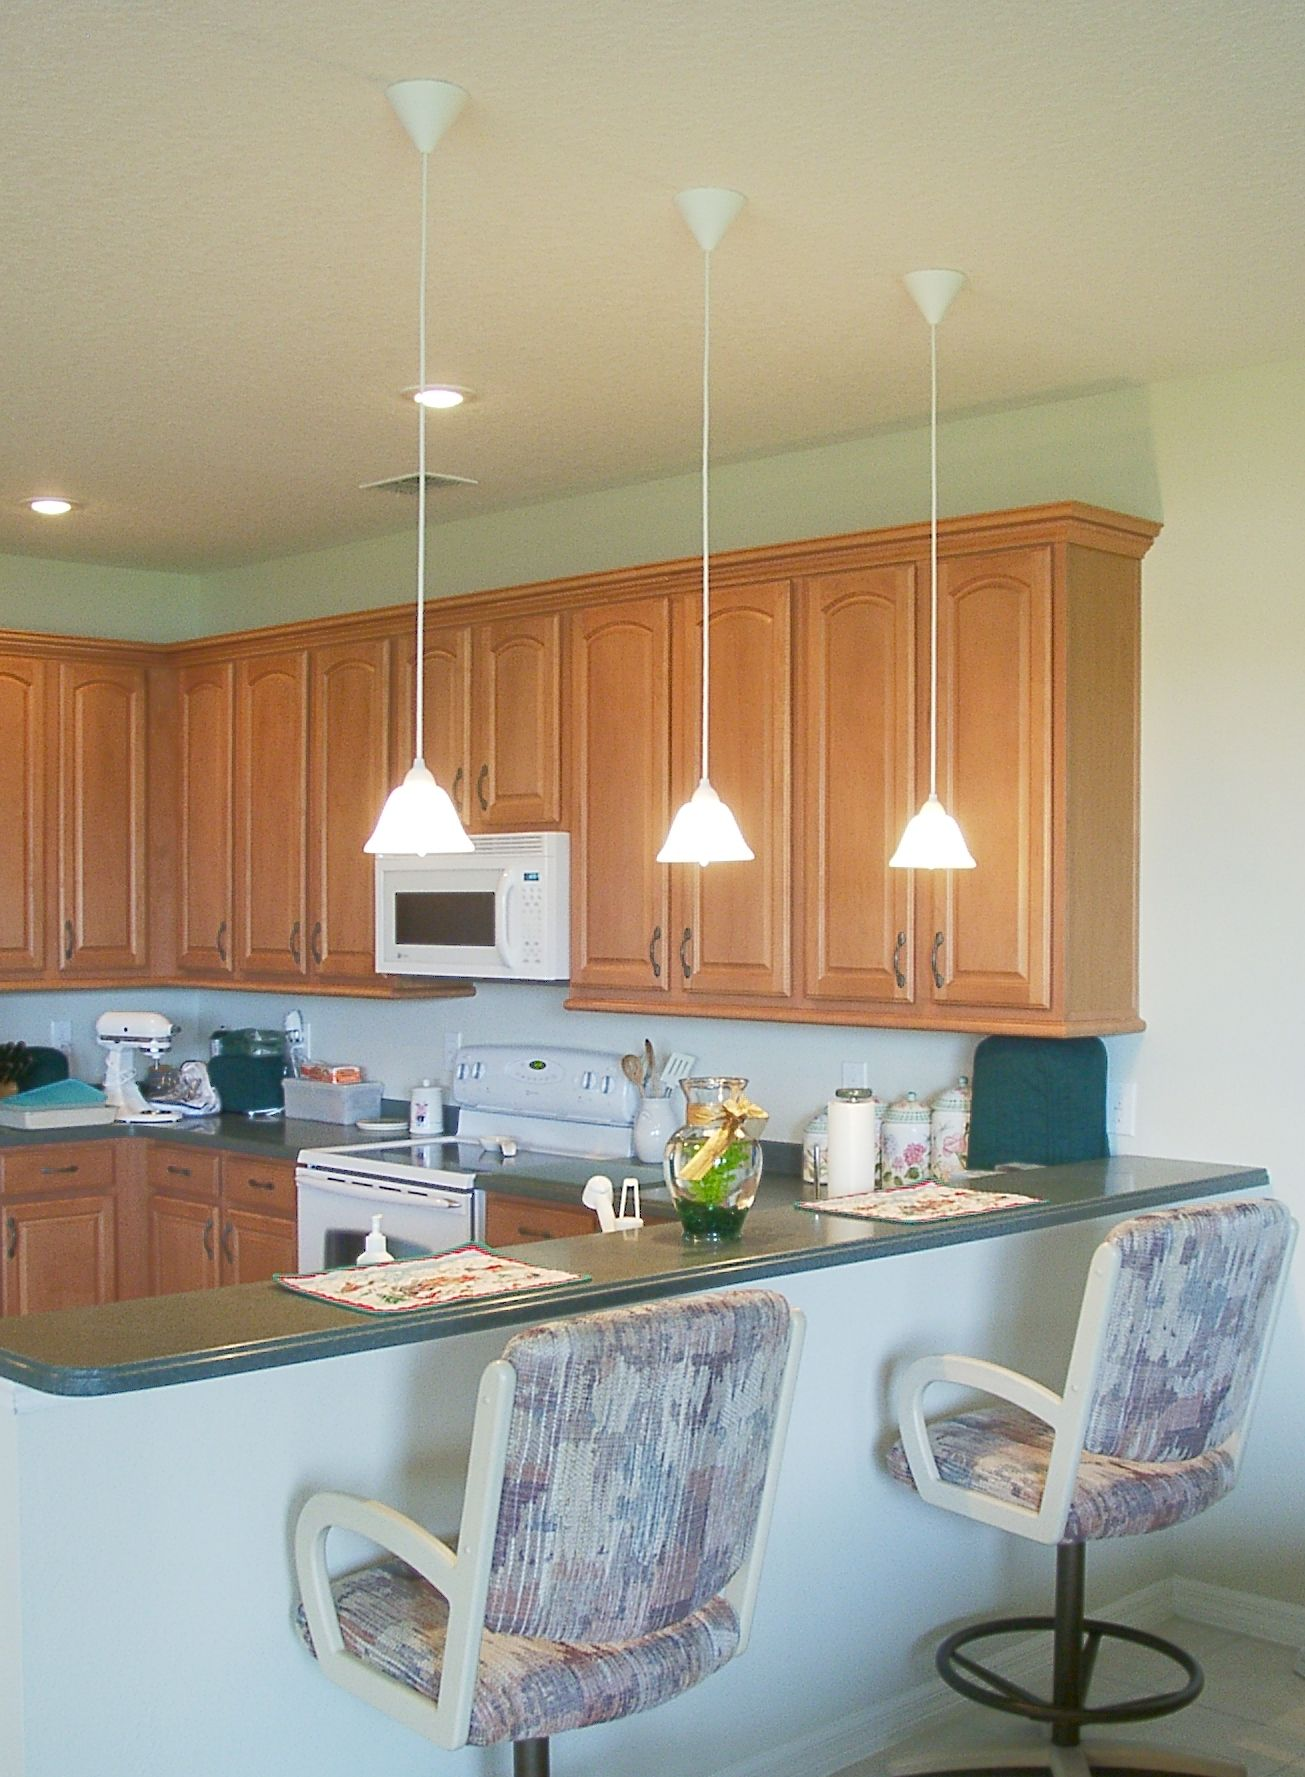 Hanging Lights Kitchen Small Stoves Hang Over Counter Home Ideas